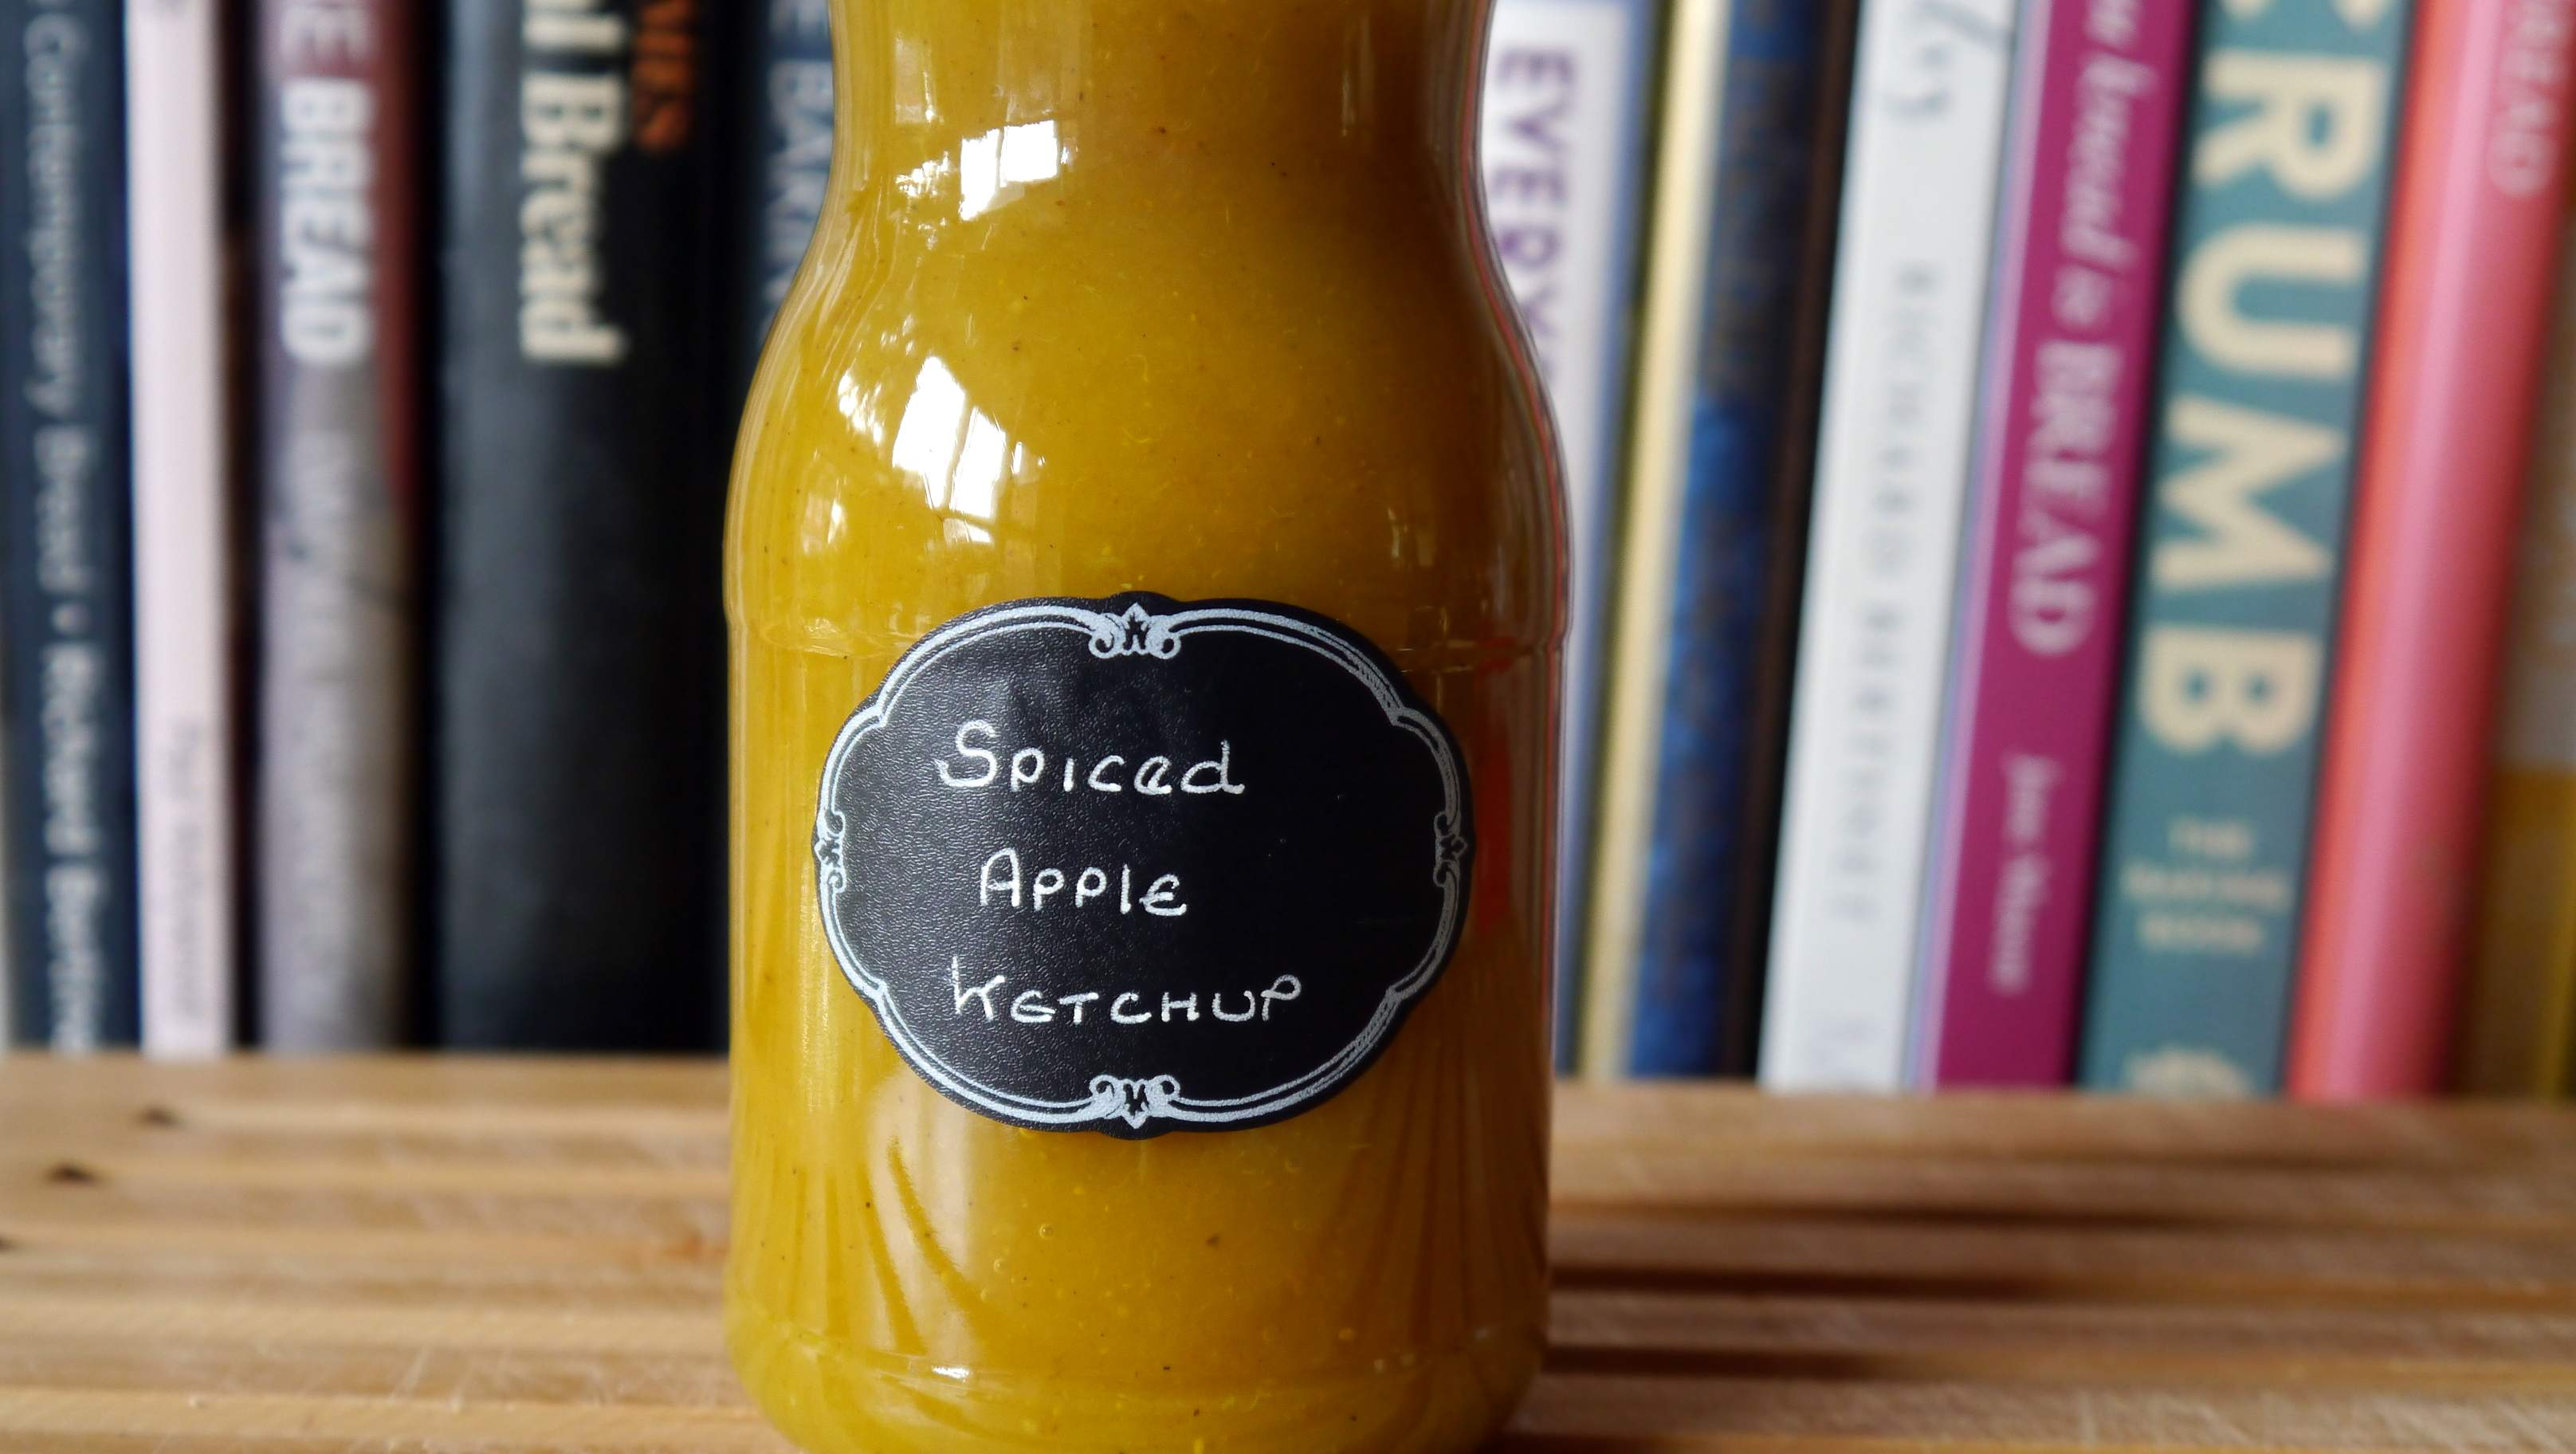 Spiced Apple Ketchup